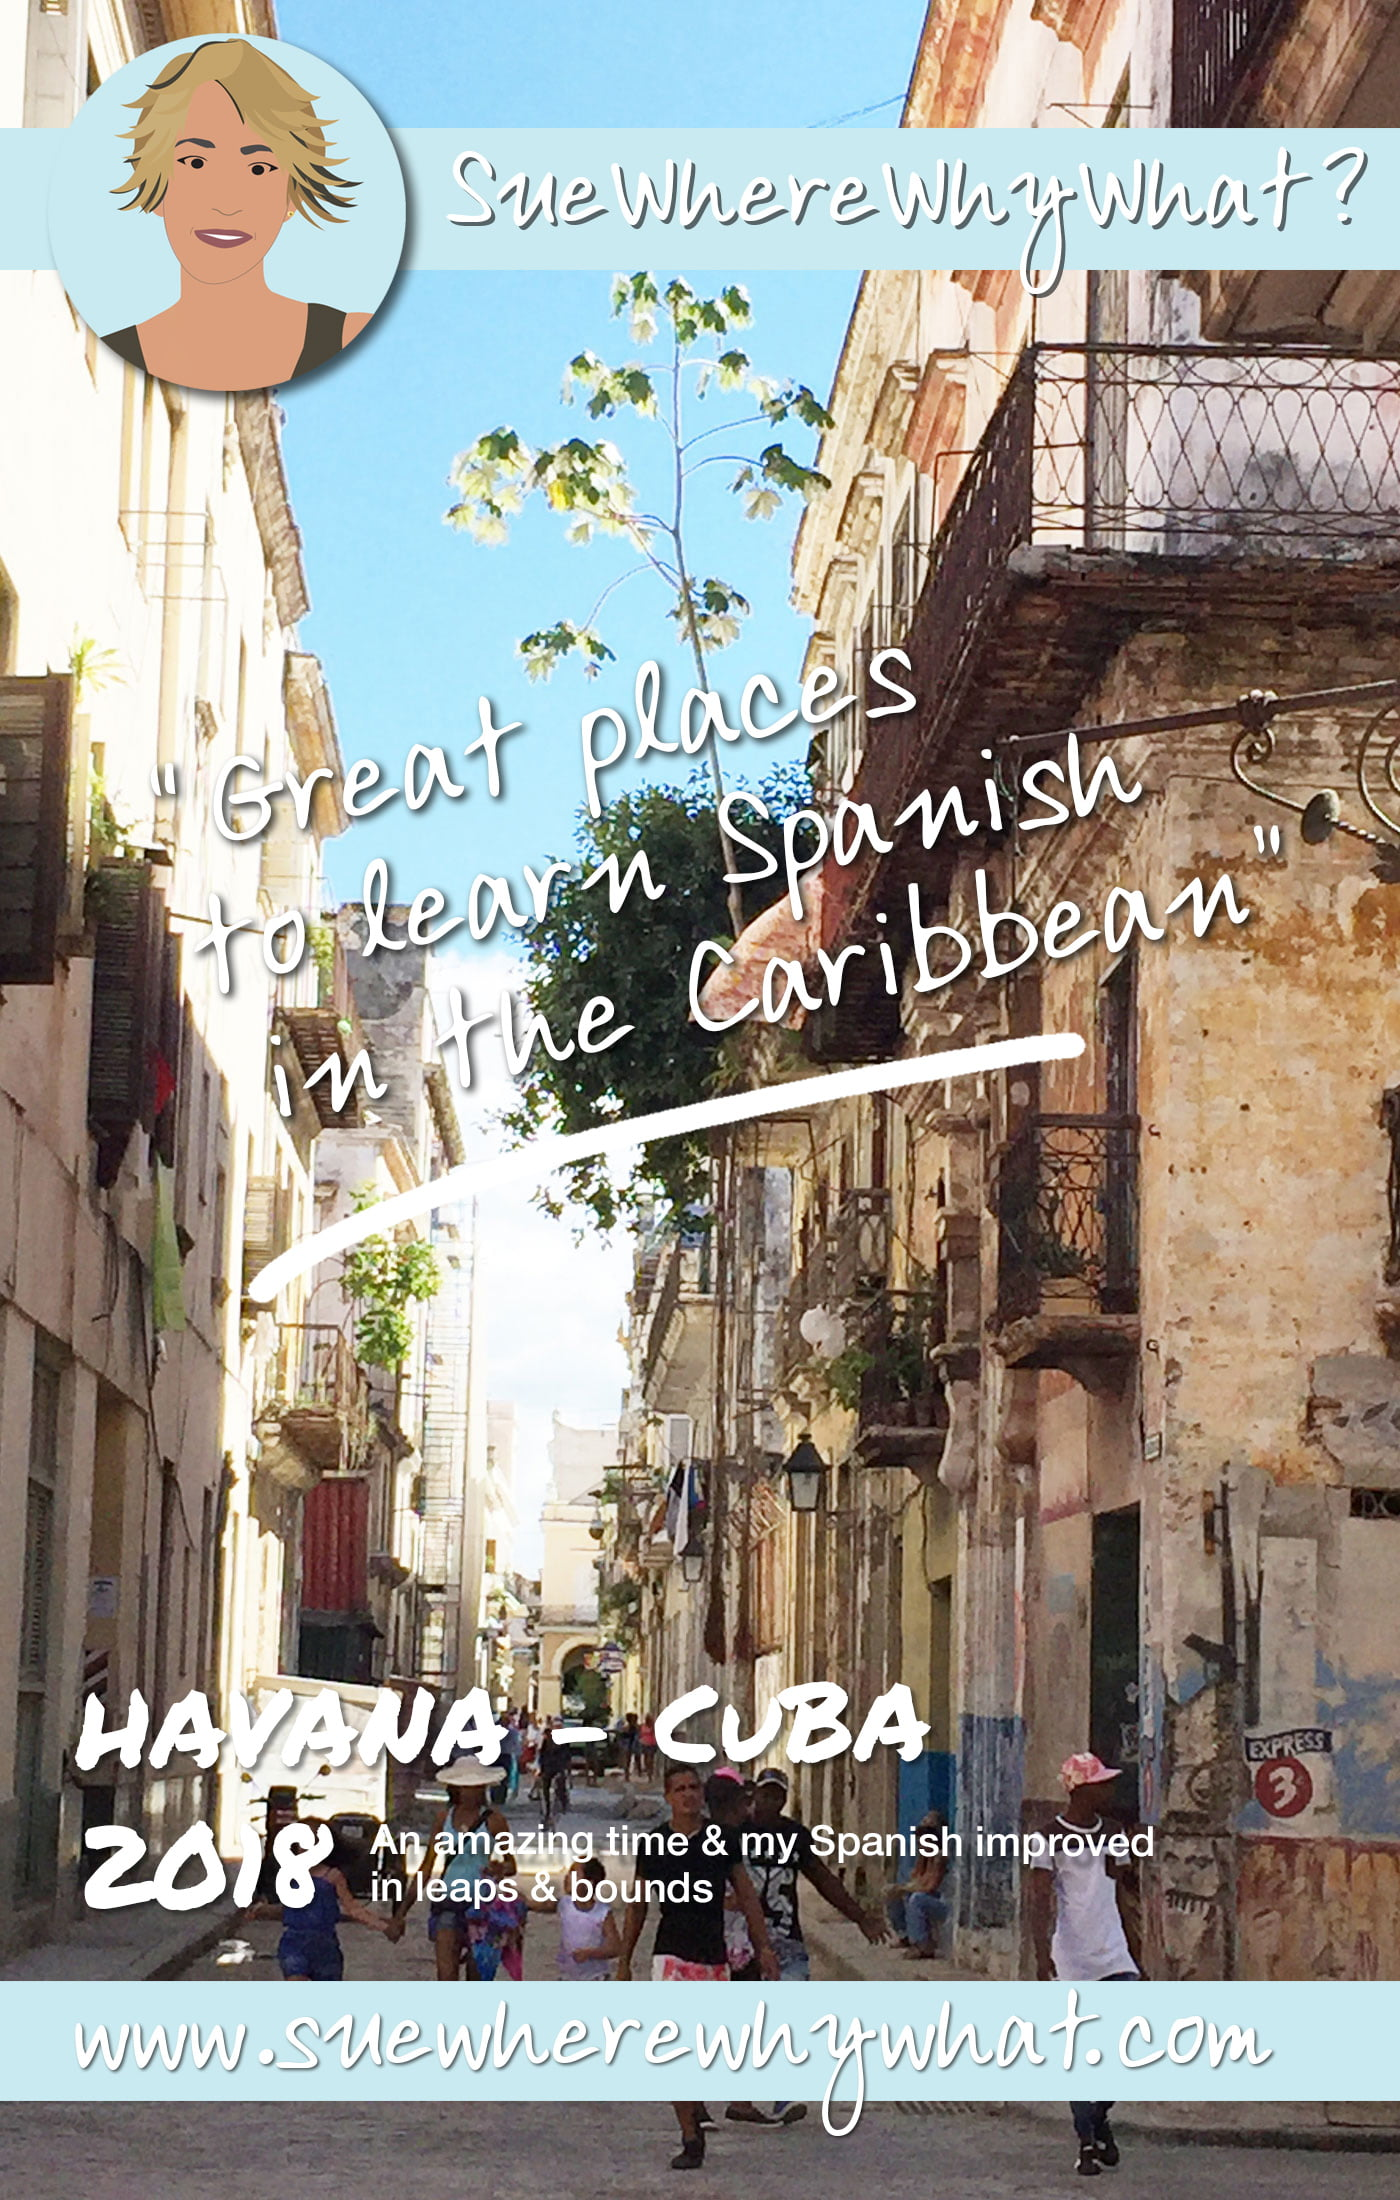 2 Great places to learn & improve your Spanish Language in the Caribbean - Havana, Cuba & Santo Domingo, Dominican Republic. My top tips on what to expect & how to get the most out of your experience. https://www.suewherewhywhat.com/countries/cuba/2-great-places-to-learn-spanish-in-the-caribbean